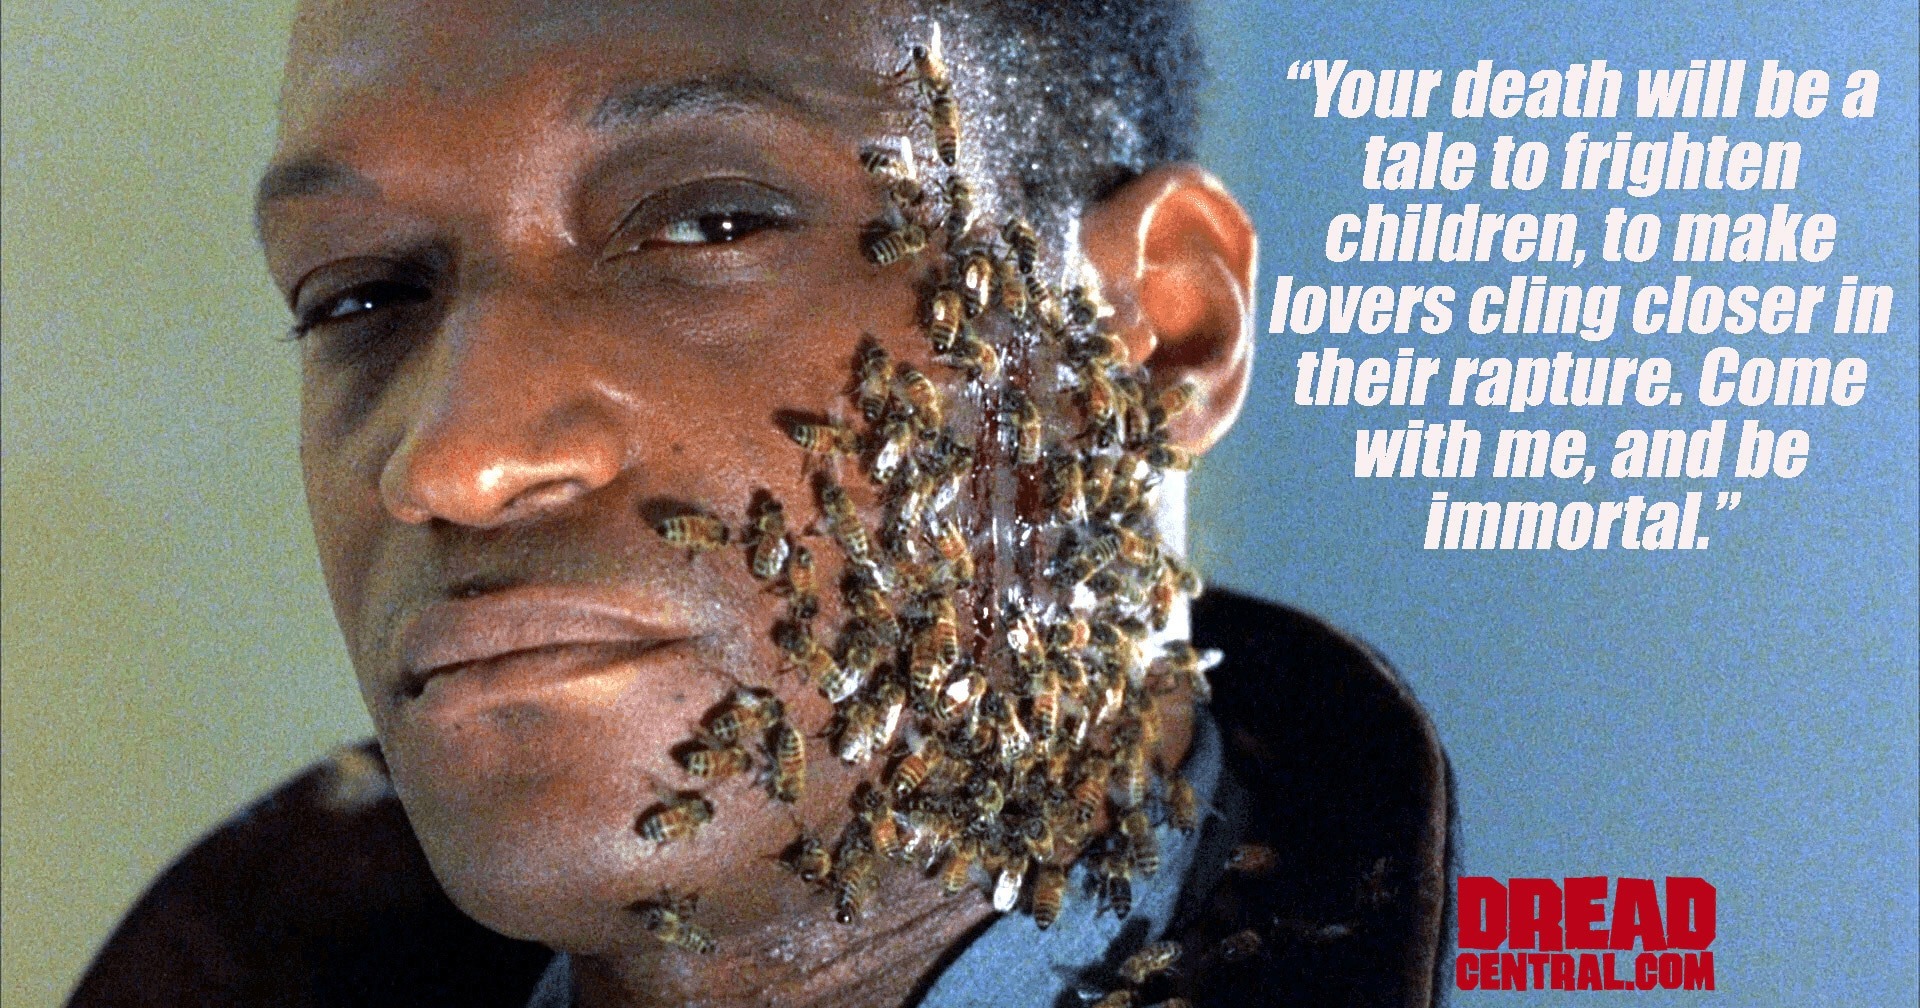 1Tony Todd as Candyman - Director Bernard Rose Interested in a Proper Sequel to Candyman